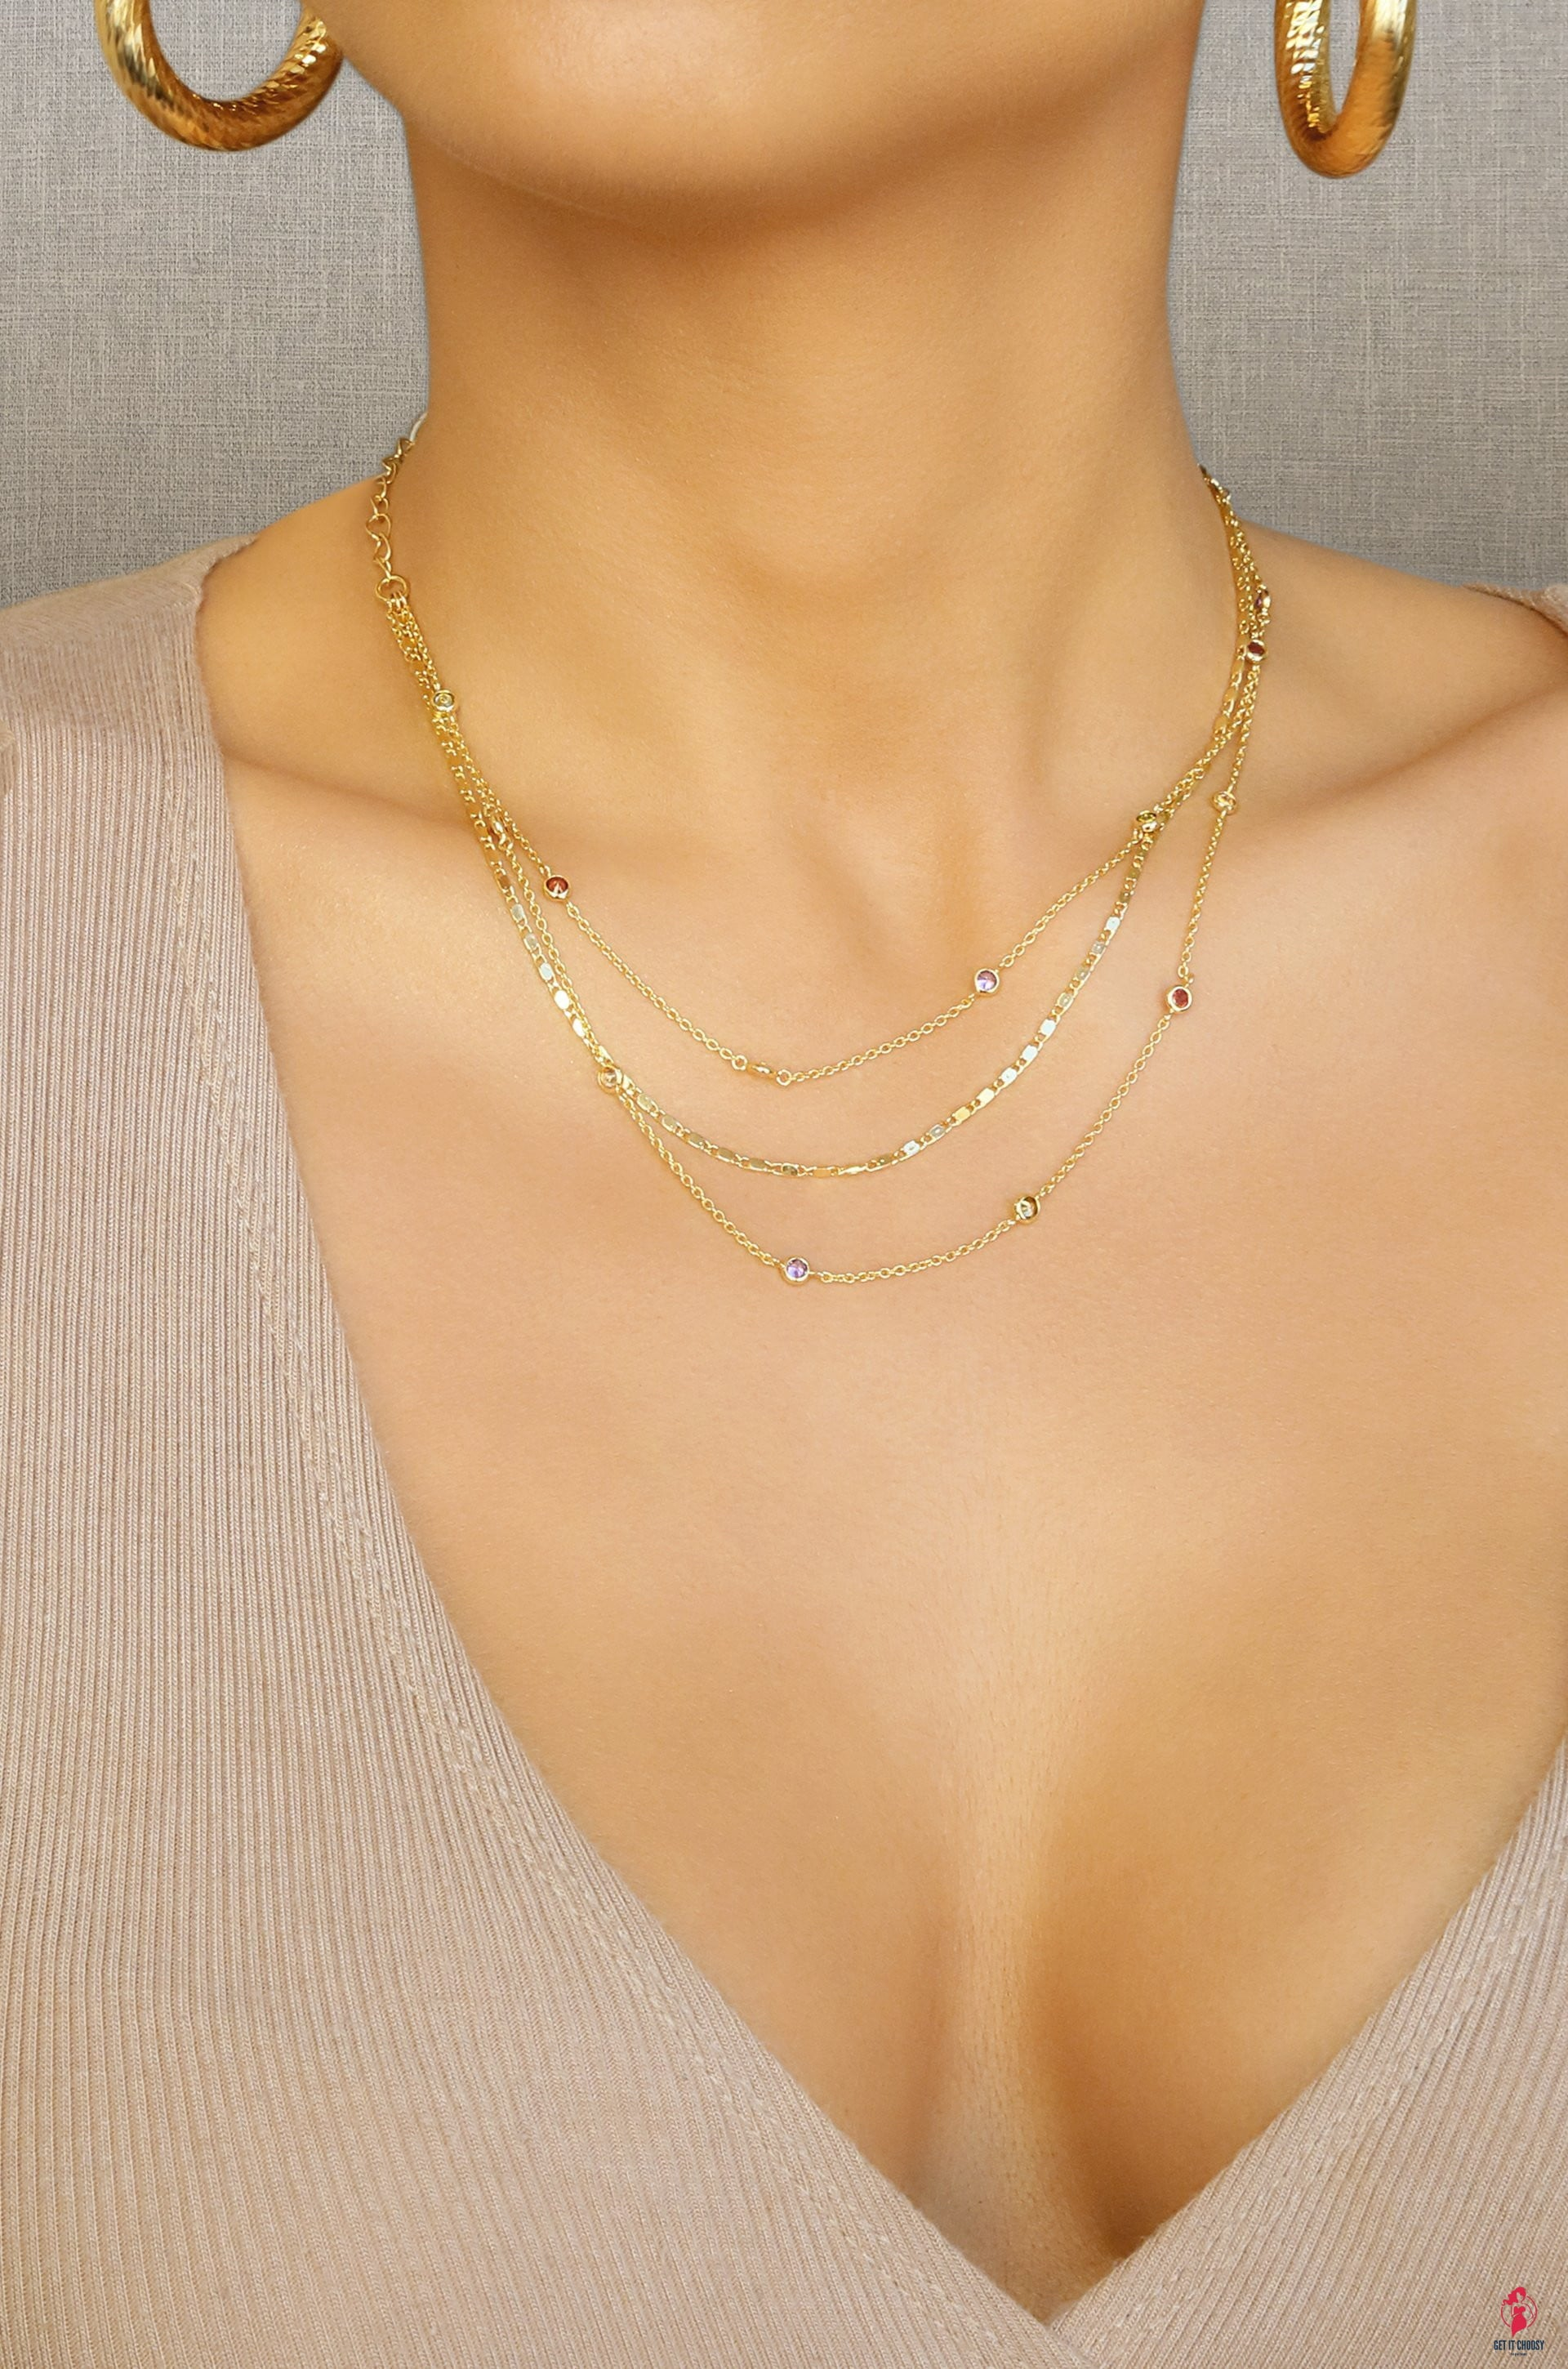 Over the Rainbow Layered Gold Chain Necklace by Getitchoosy